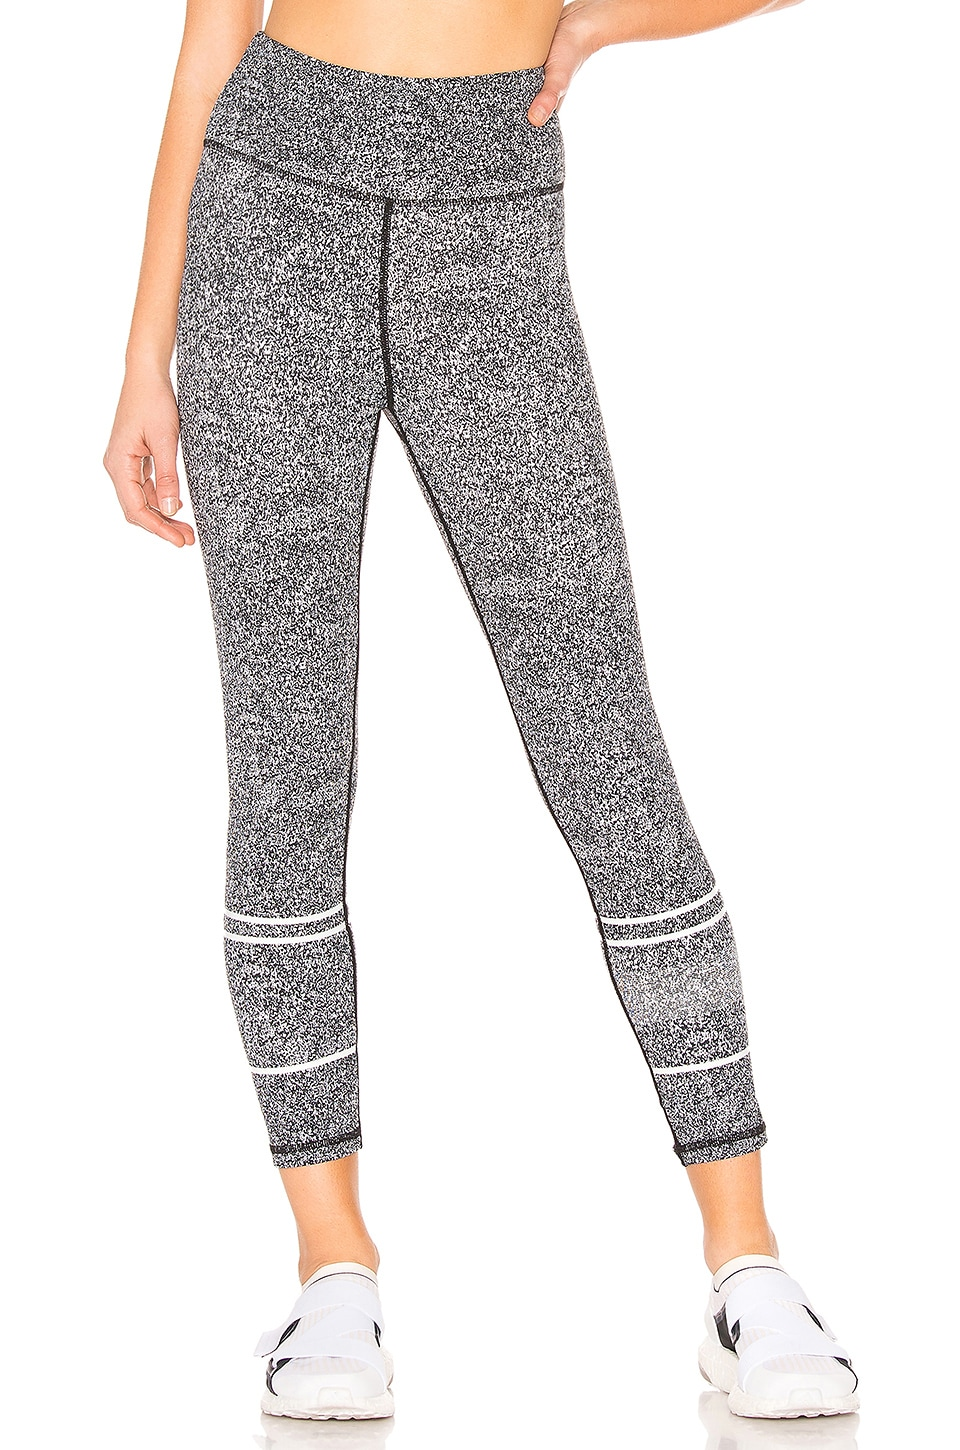 LILYBOD Lotus Legging in Gray